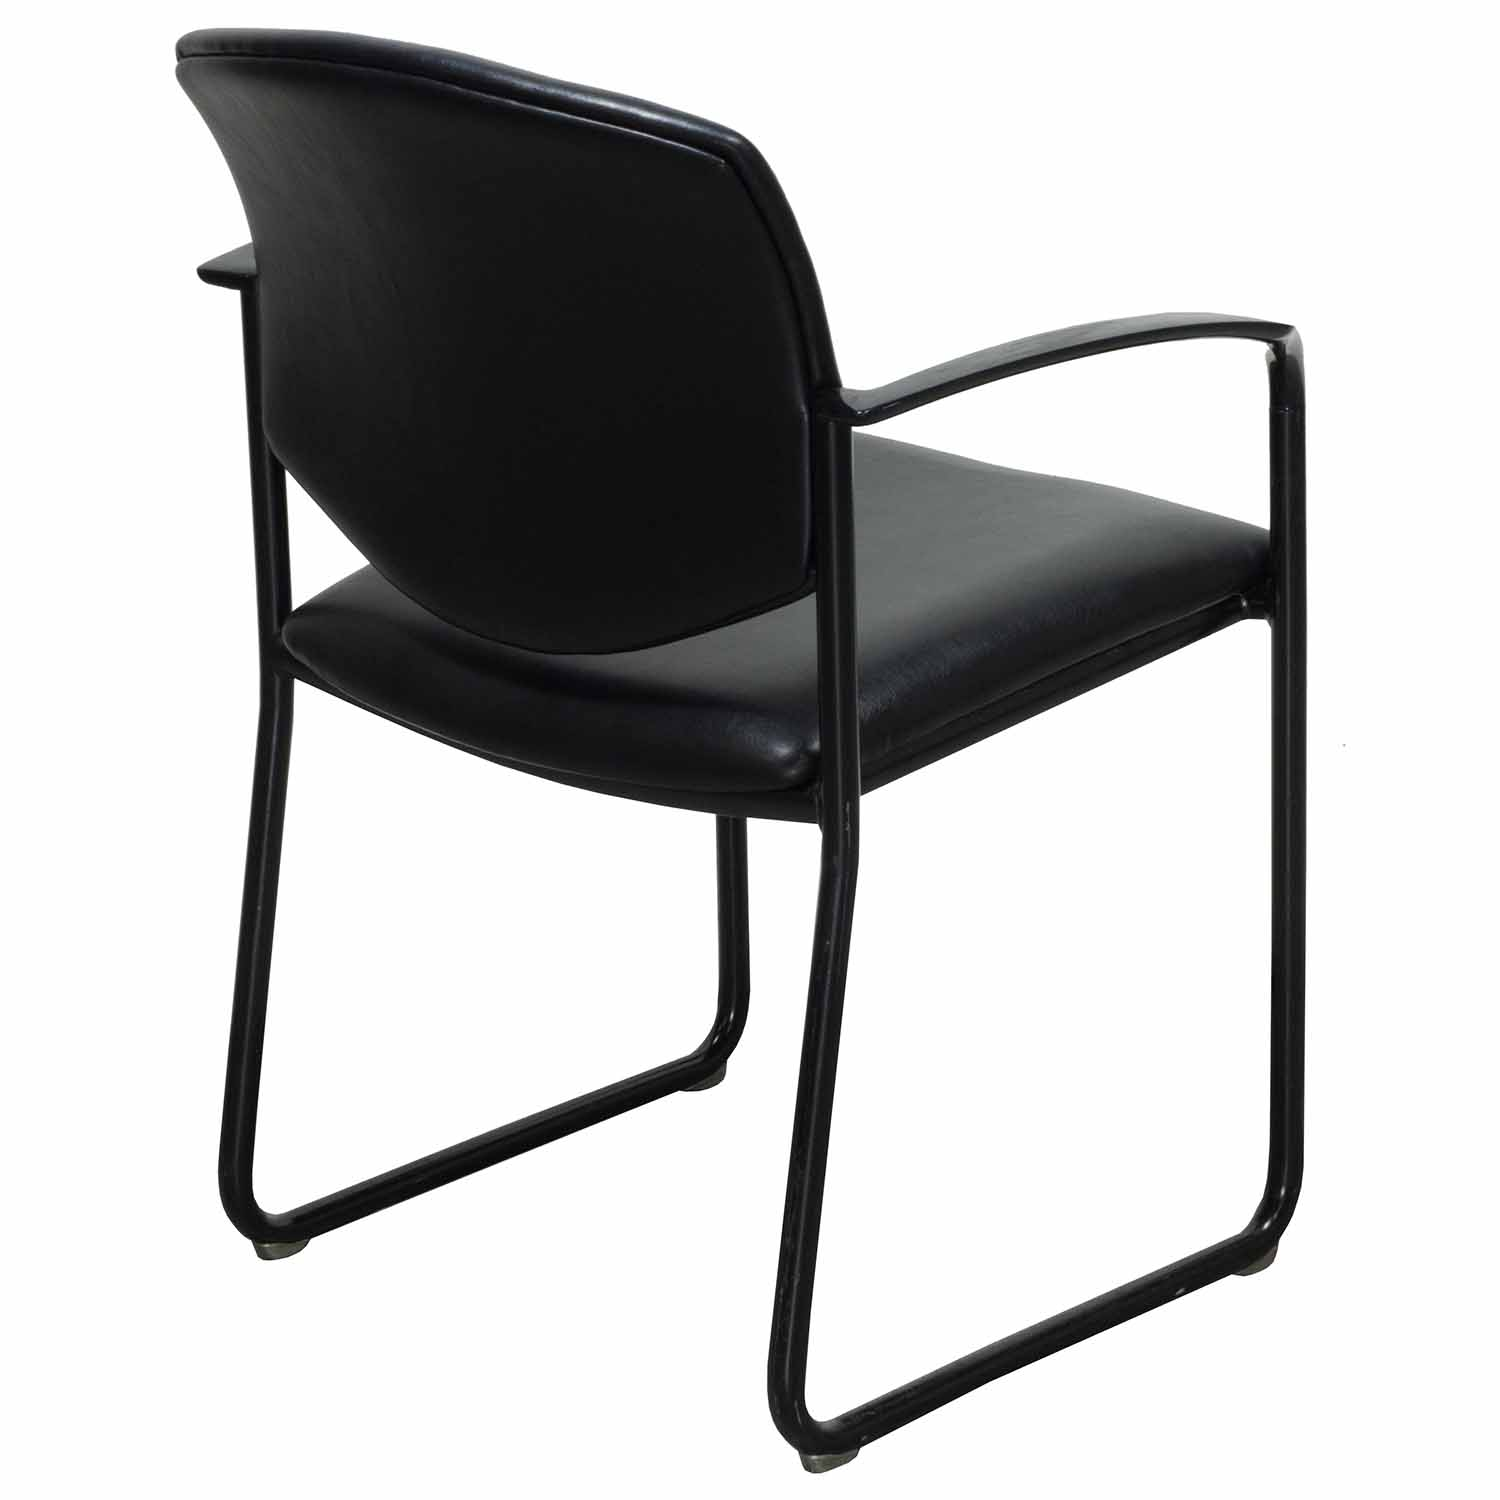 office chair steel base with wheels cover rentals edinburgh steelcase player used leather sled based black